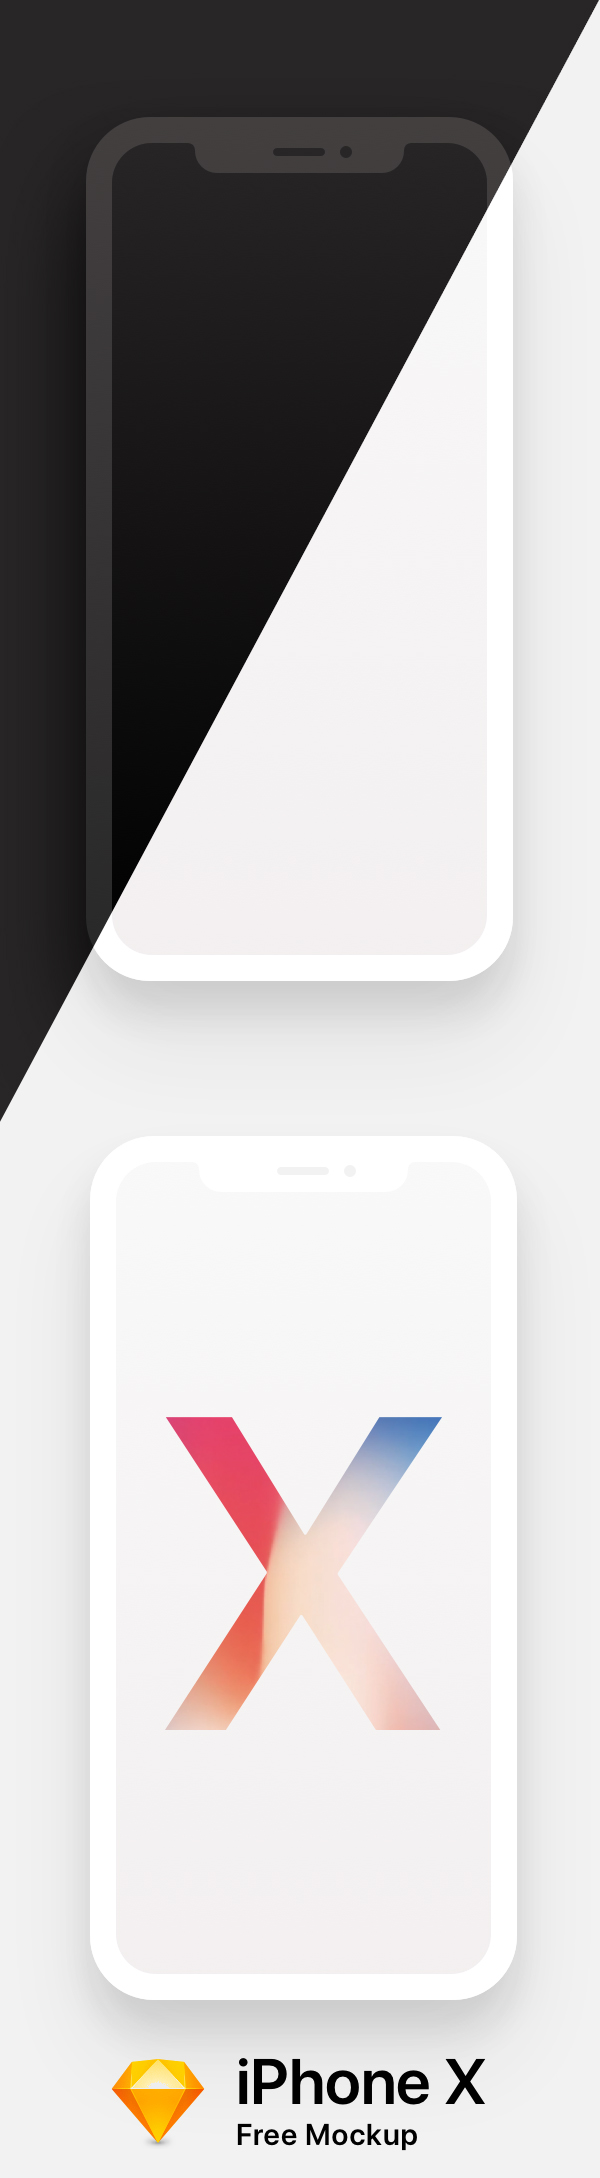 Free Download iPhone X PSD Mockups and Sketch - 28